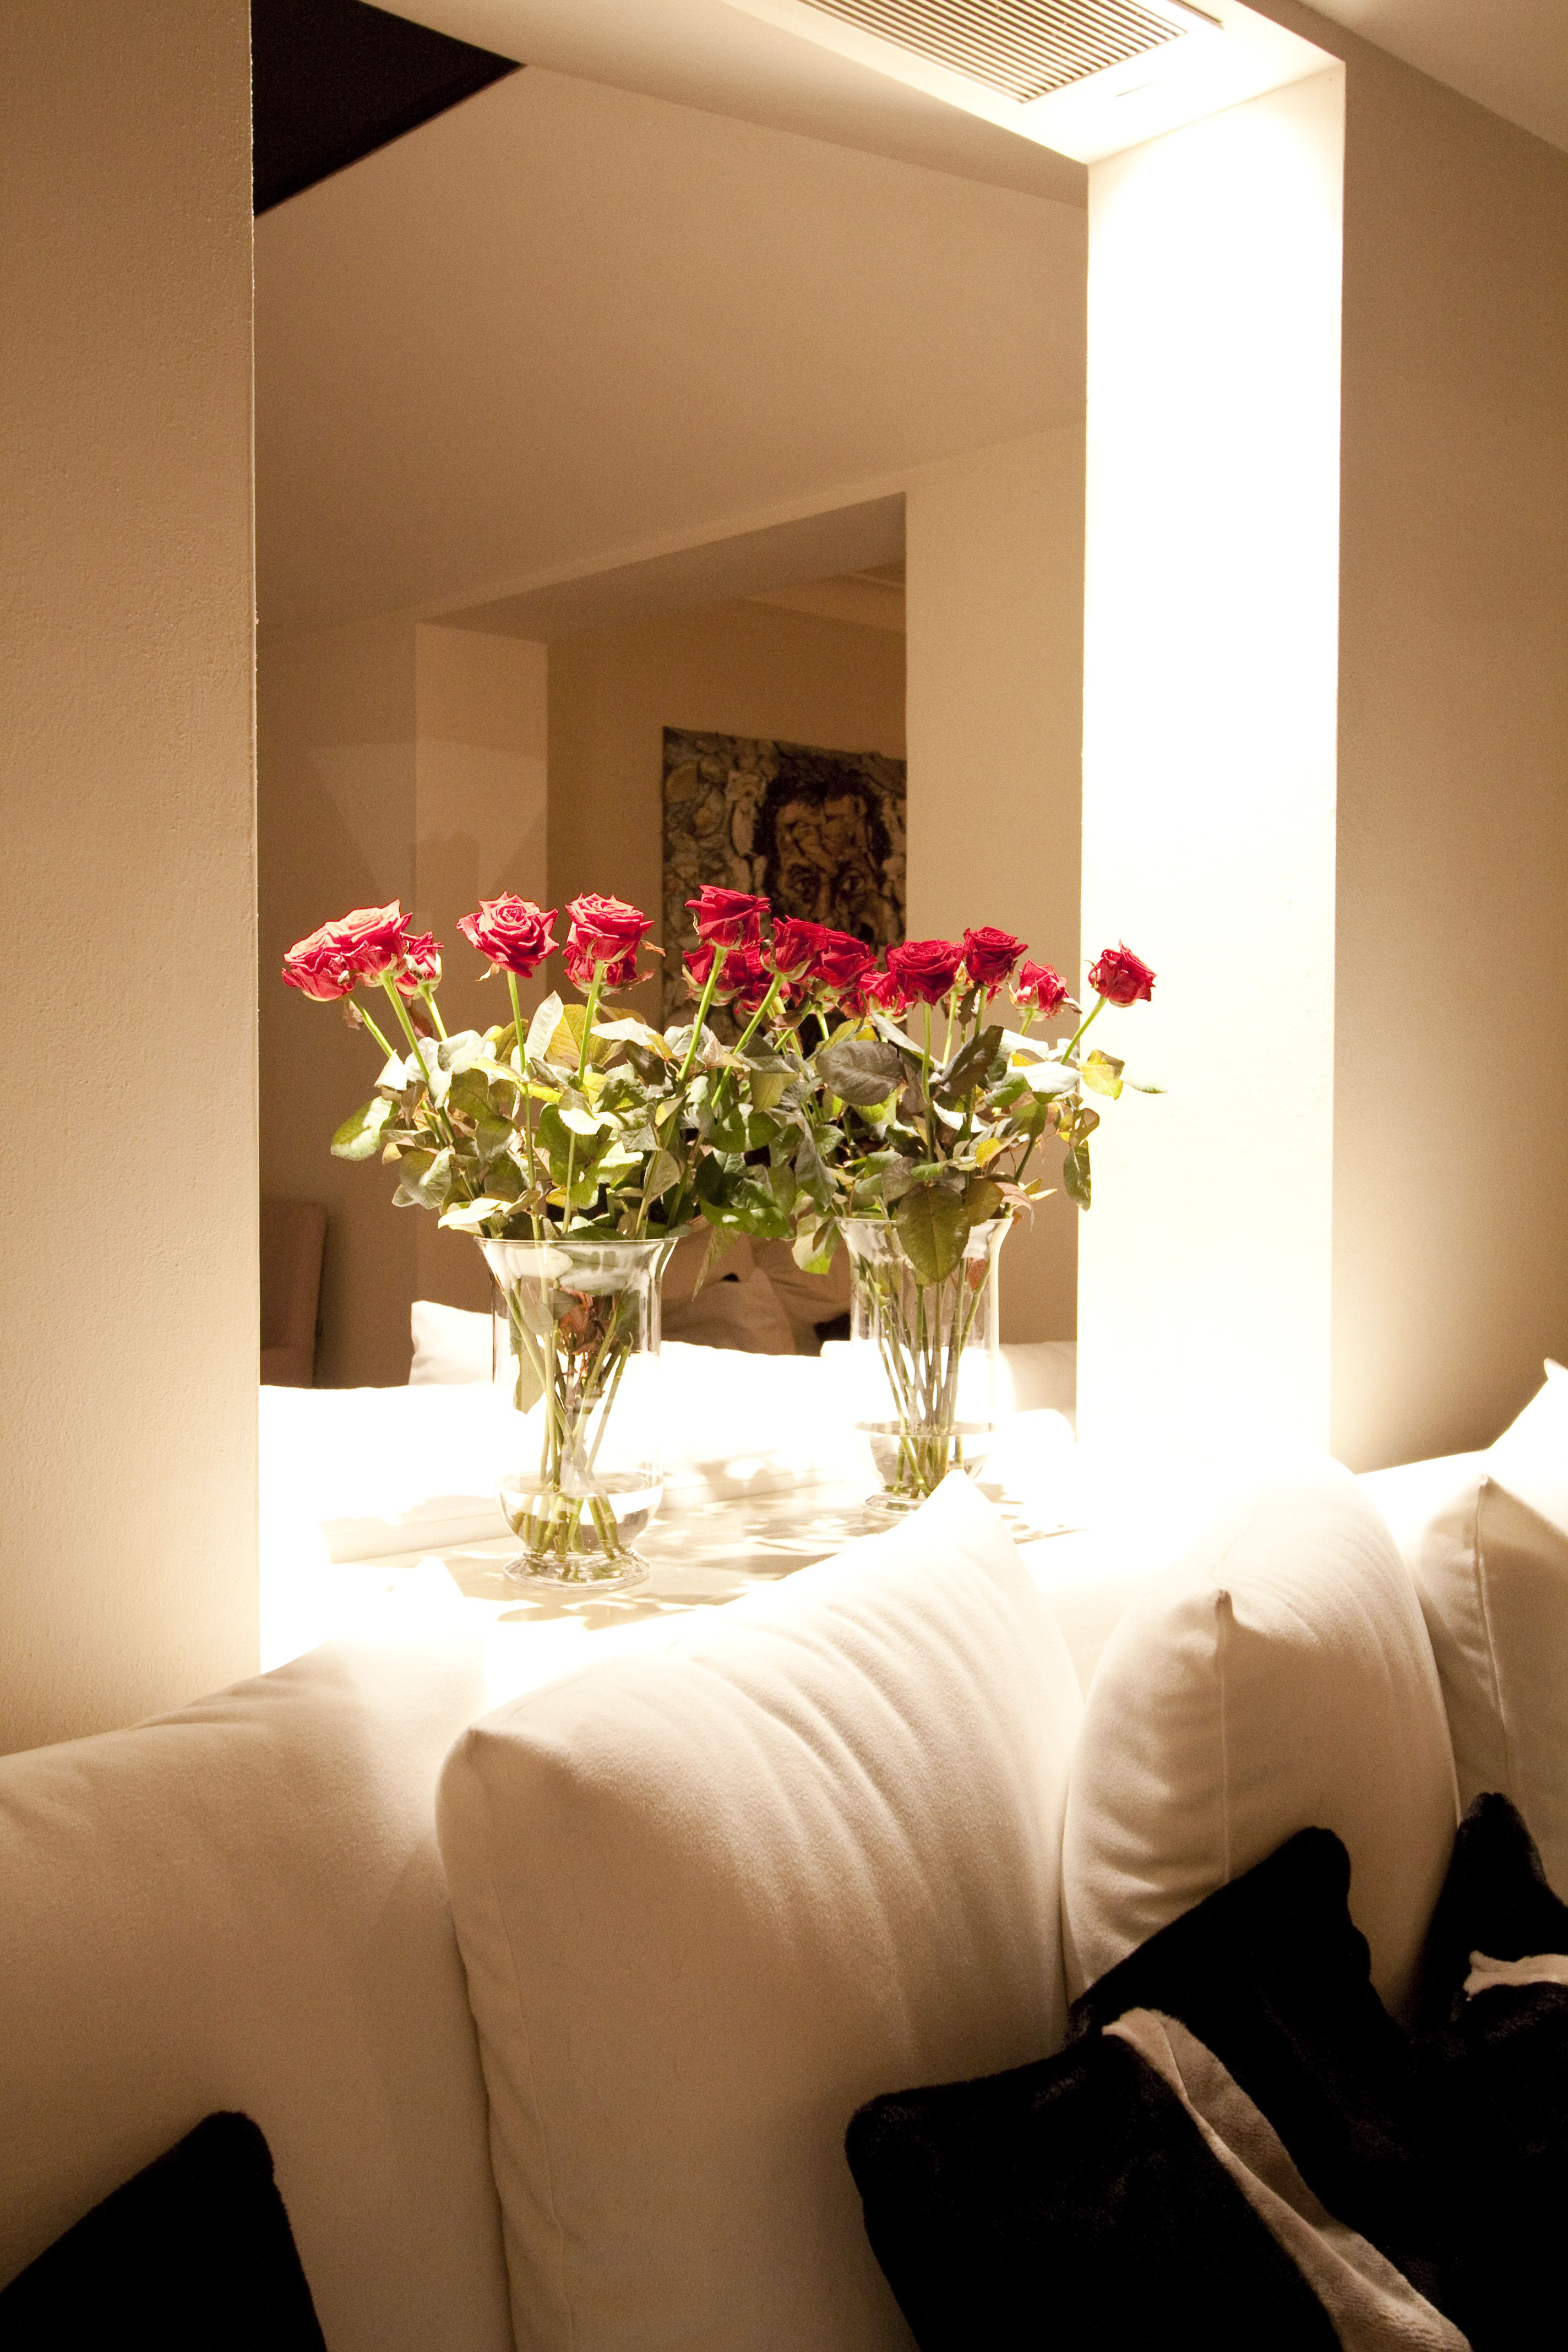 In a mood of roses @Hotel Carducci76